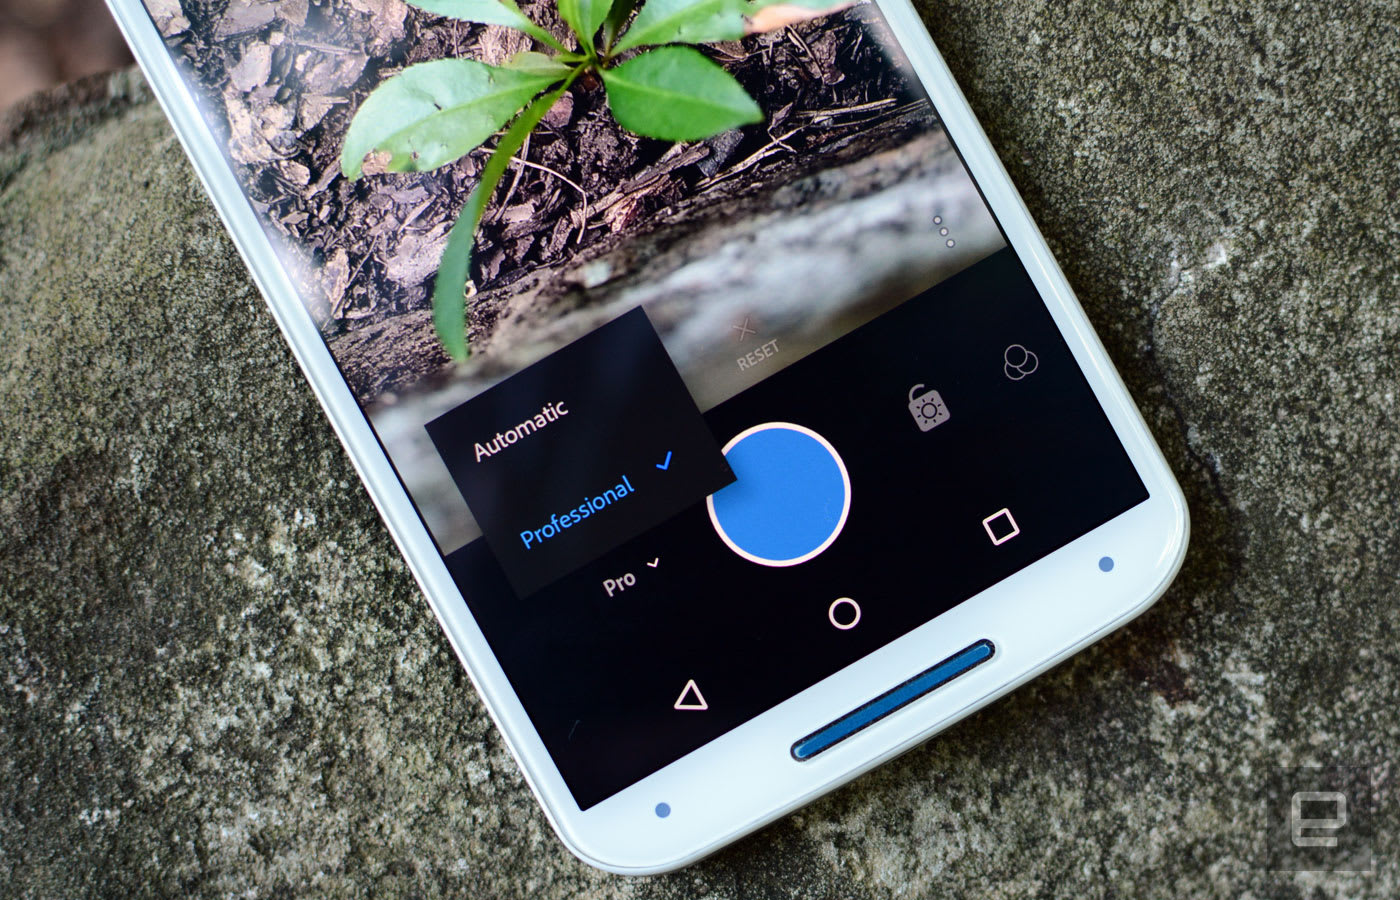 Adobe Lightroom now lets you edit RAW files on your phone